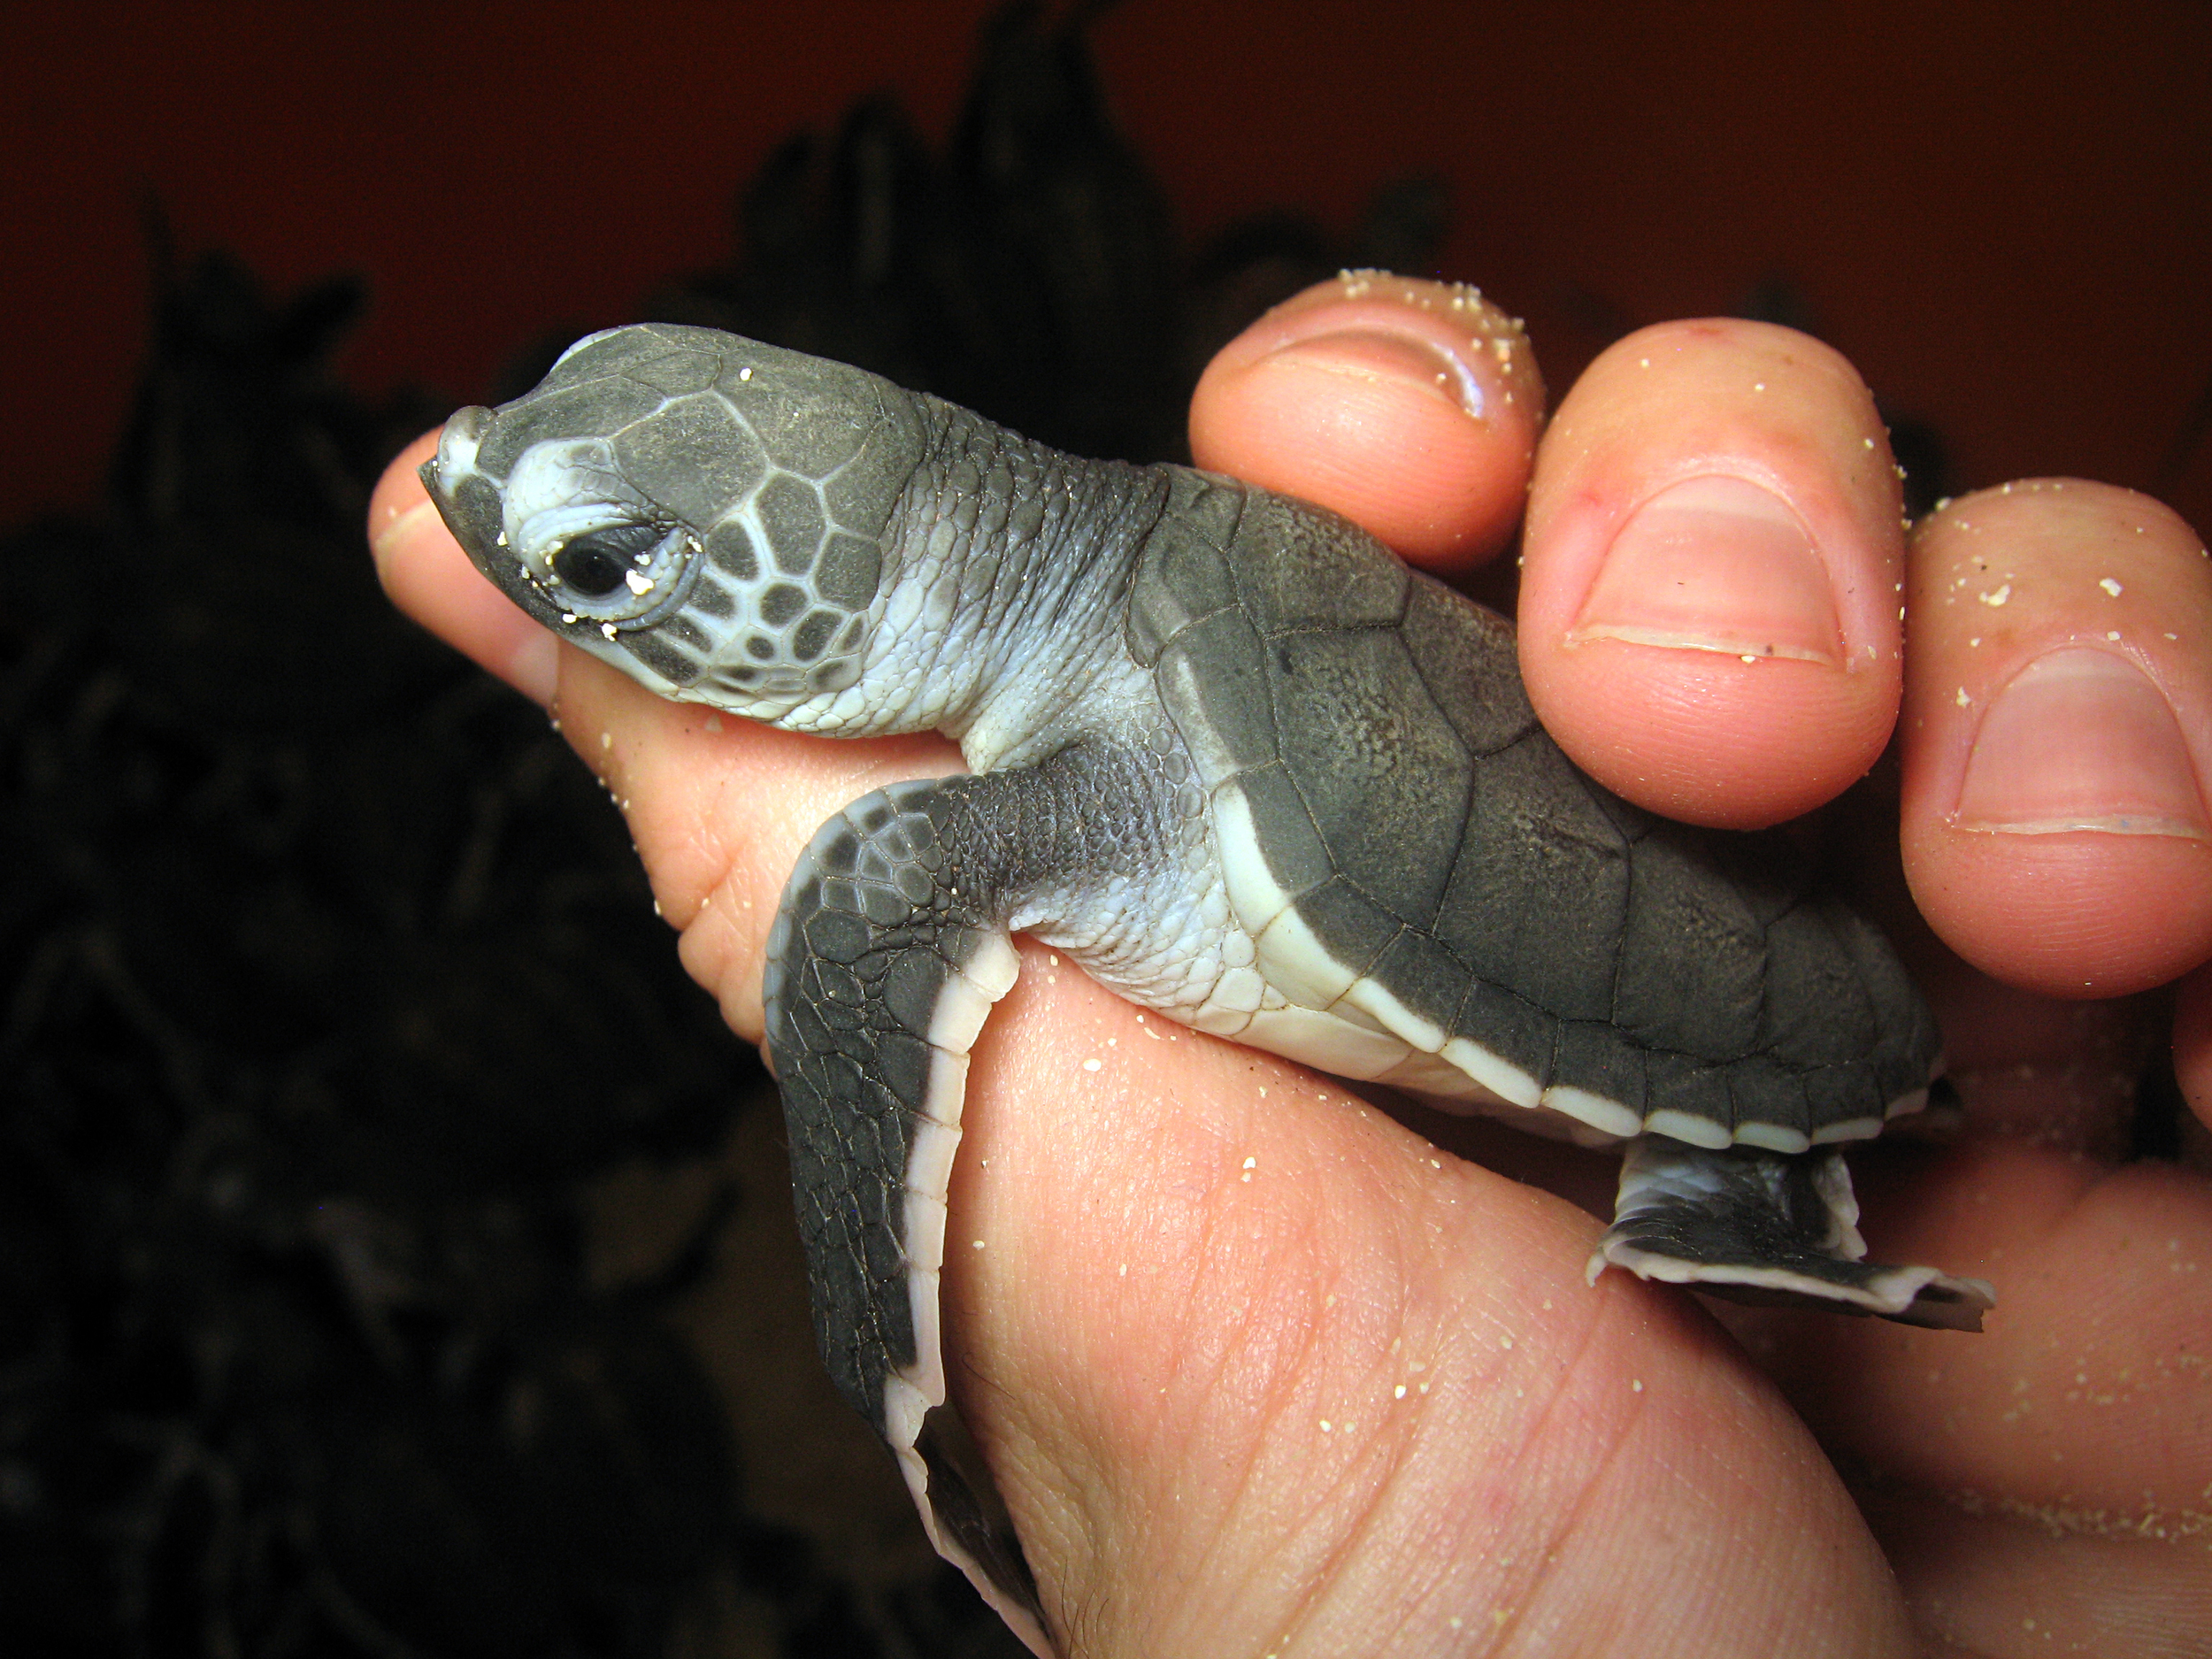 Hold baby turtles at a hatchery